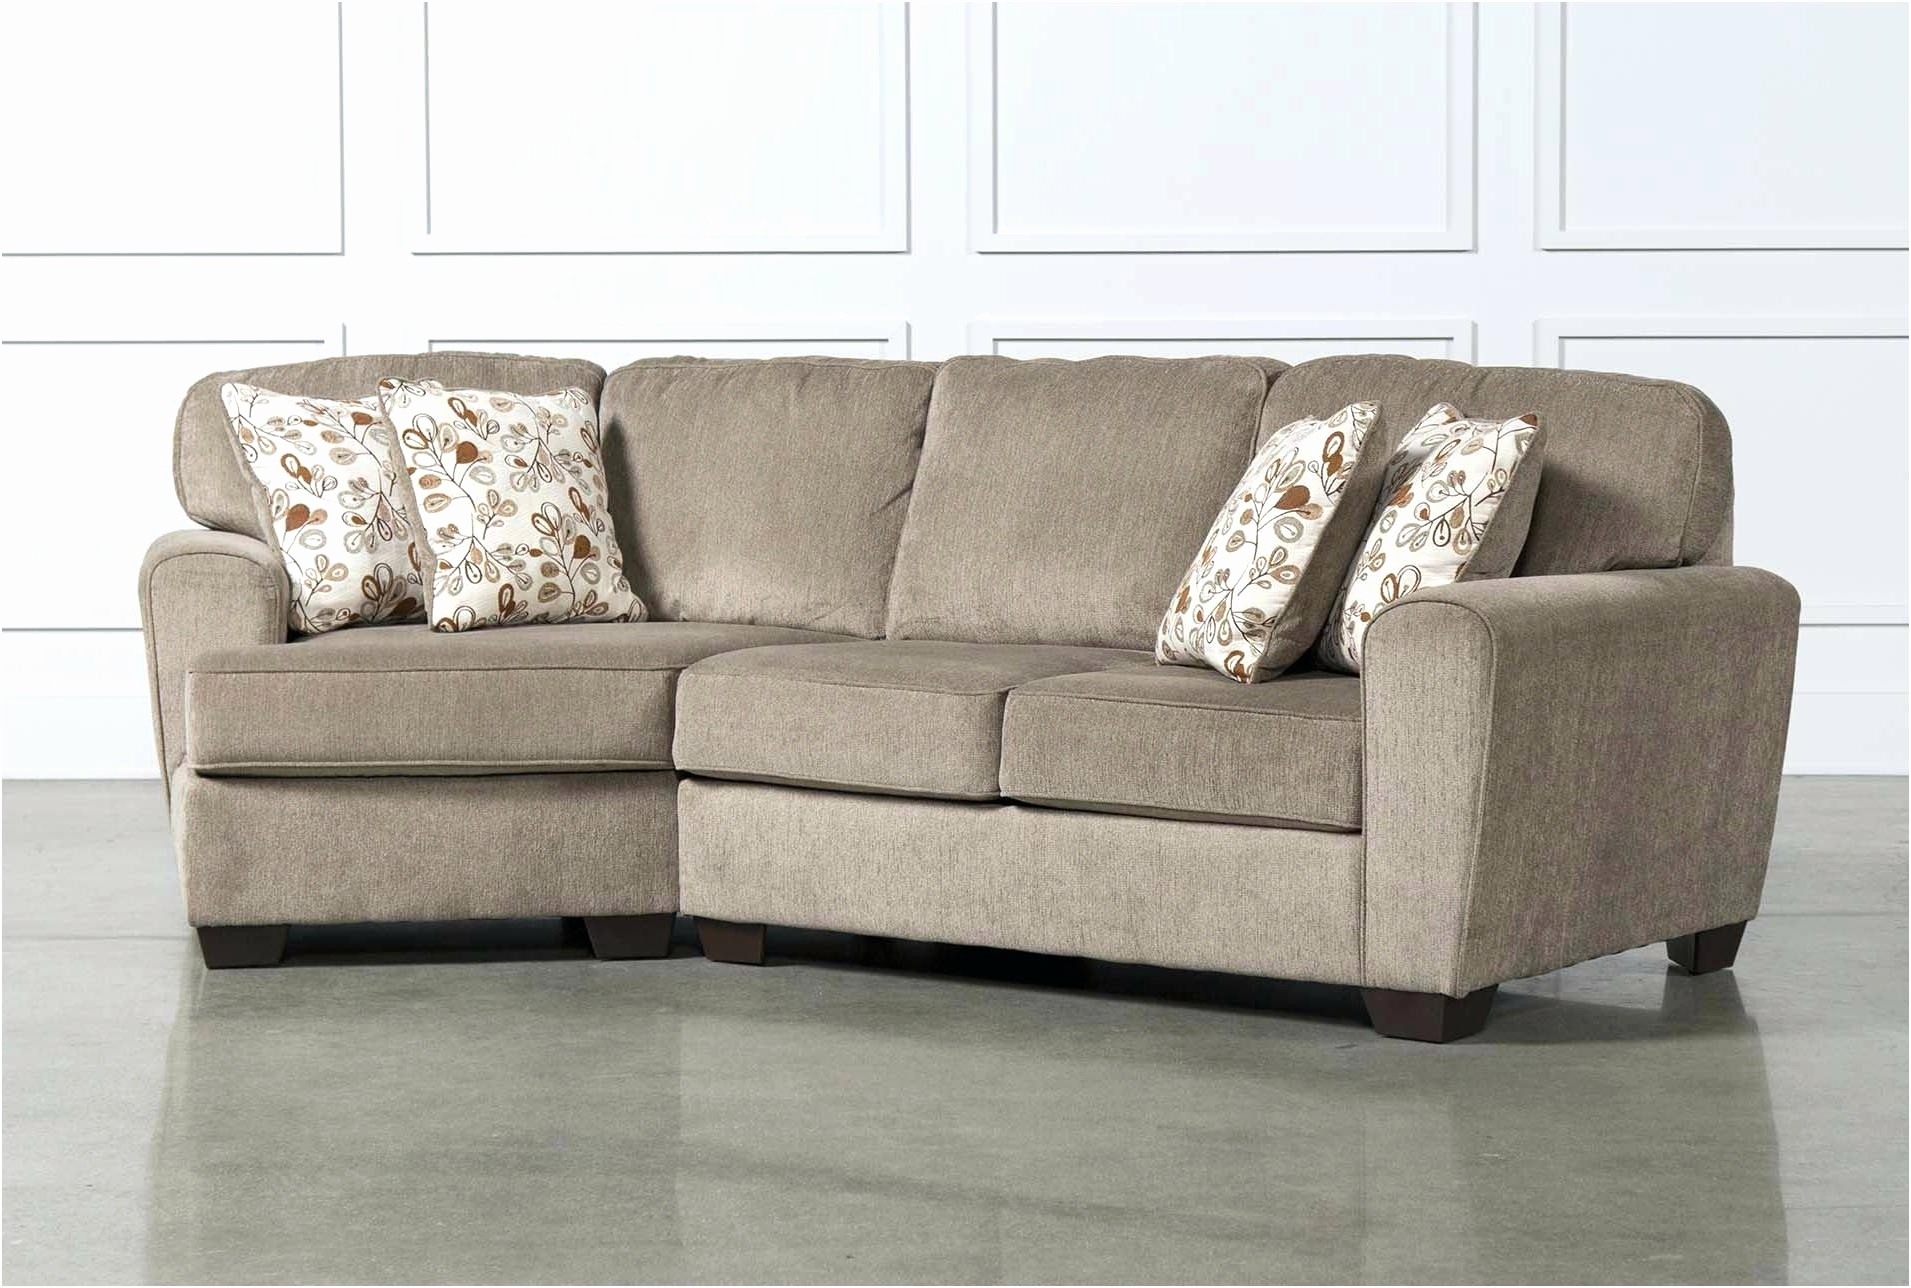 Modest Small Sectional With Chaise Lovely Couch 2018 Couches And With Regard To Small Sectional Sofas With Chaise And Ottoman (View 6 of 15)